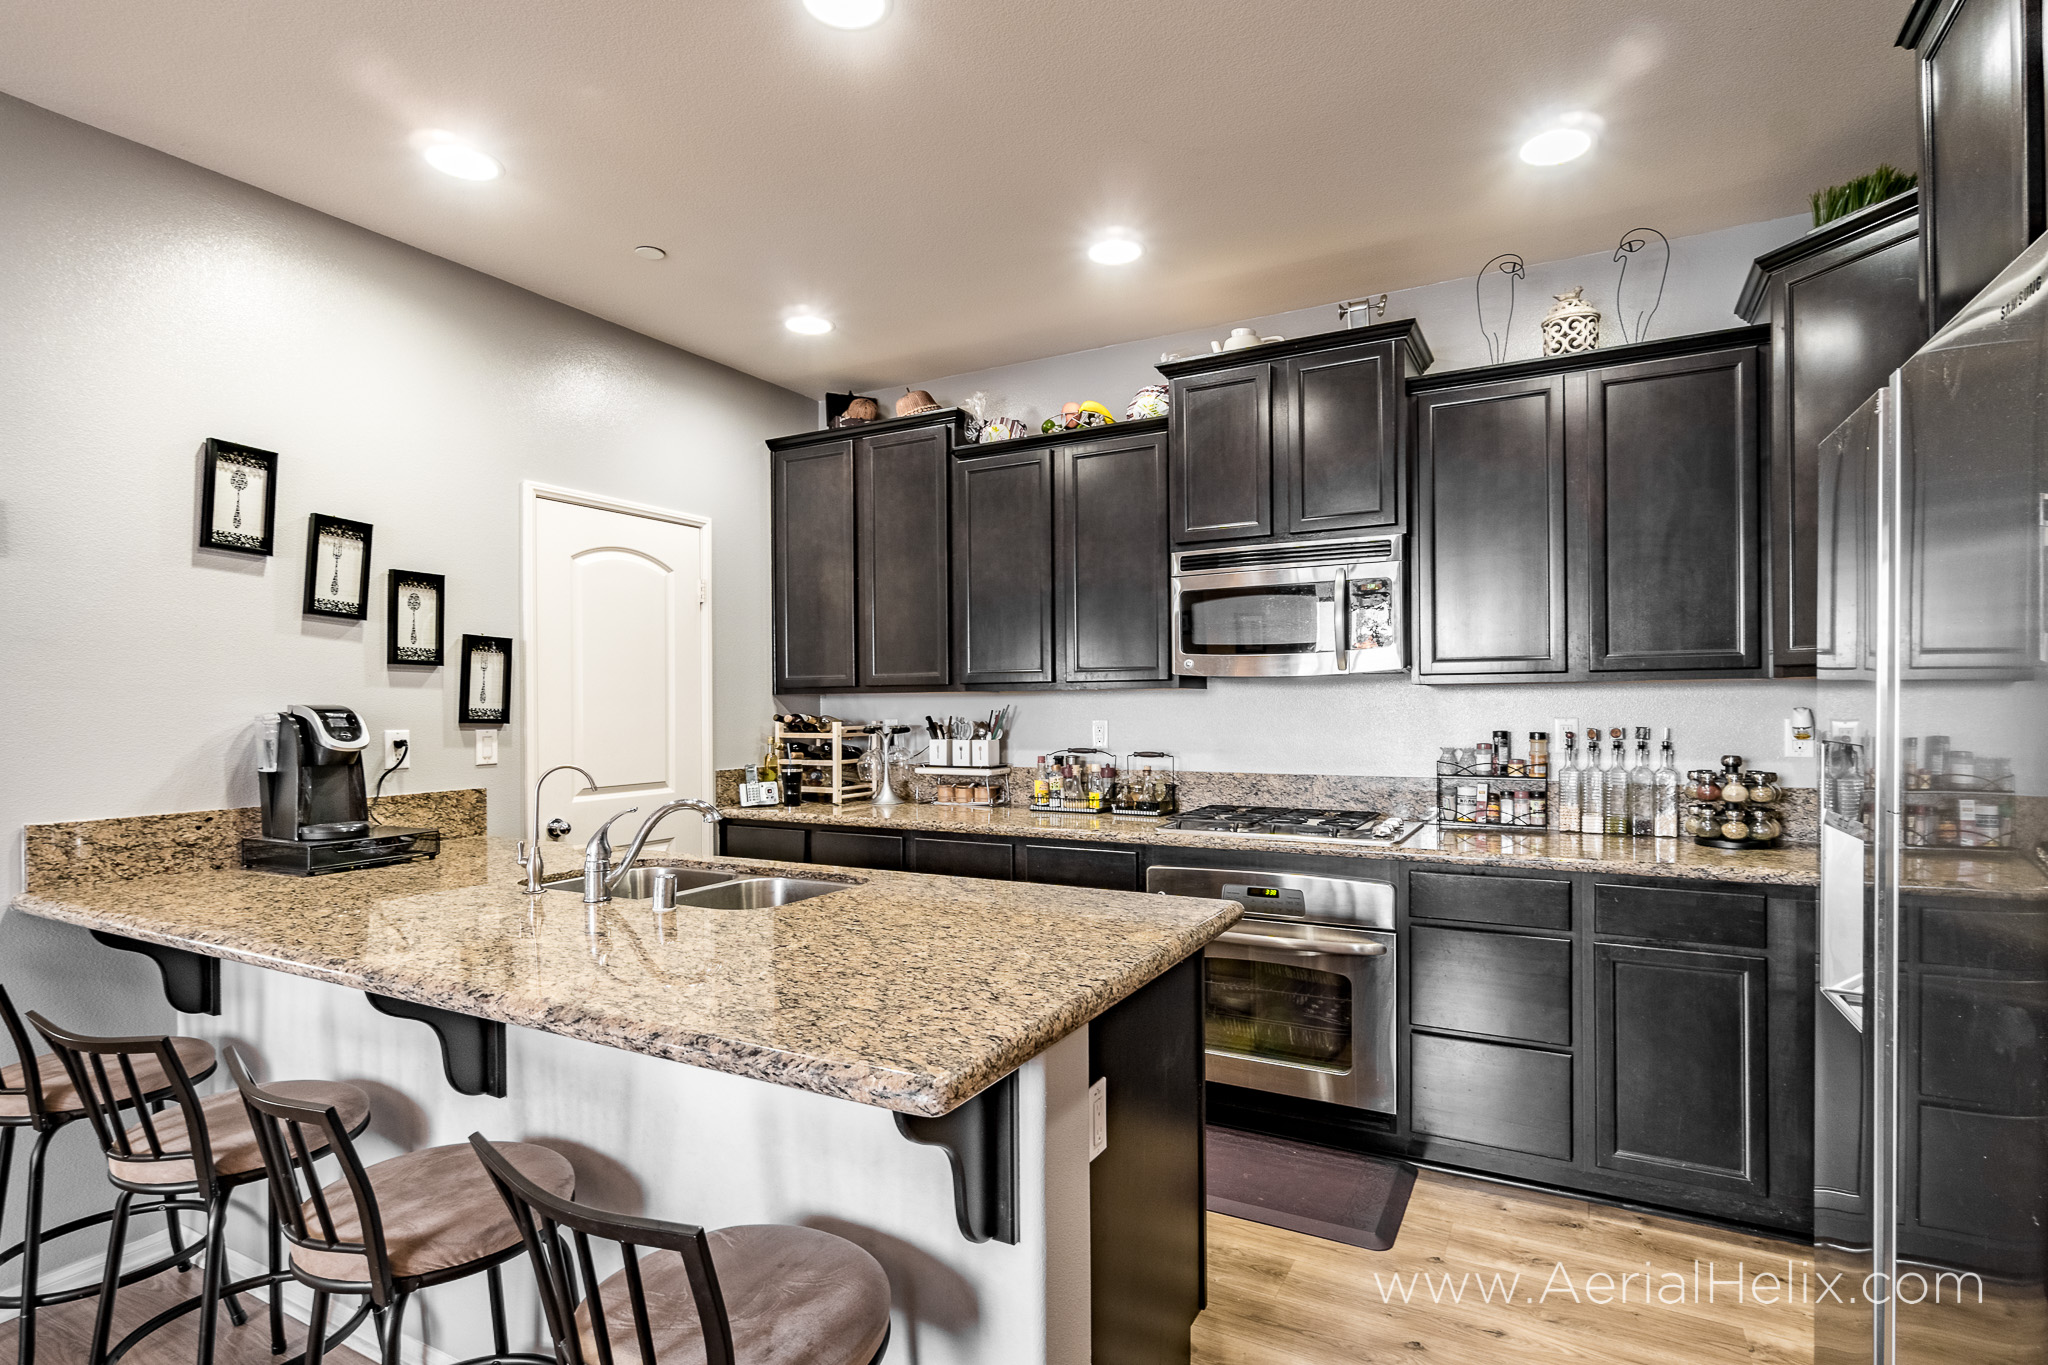 HELIX Morhouse Ave - Real-estate-photographer-18.jpg